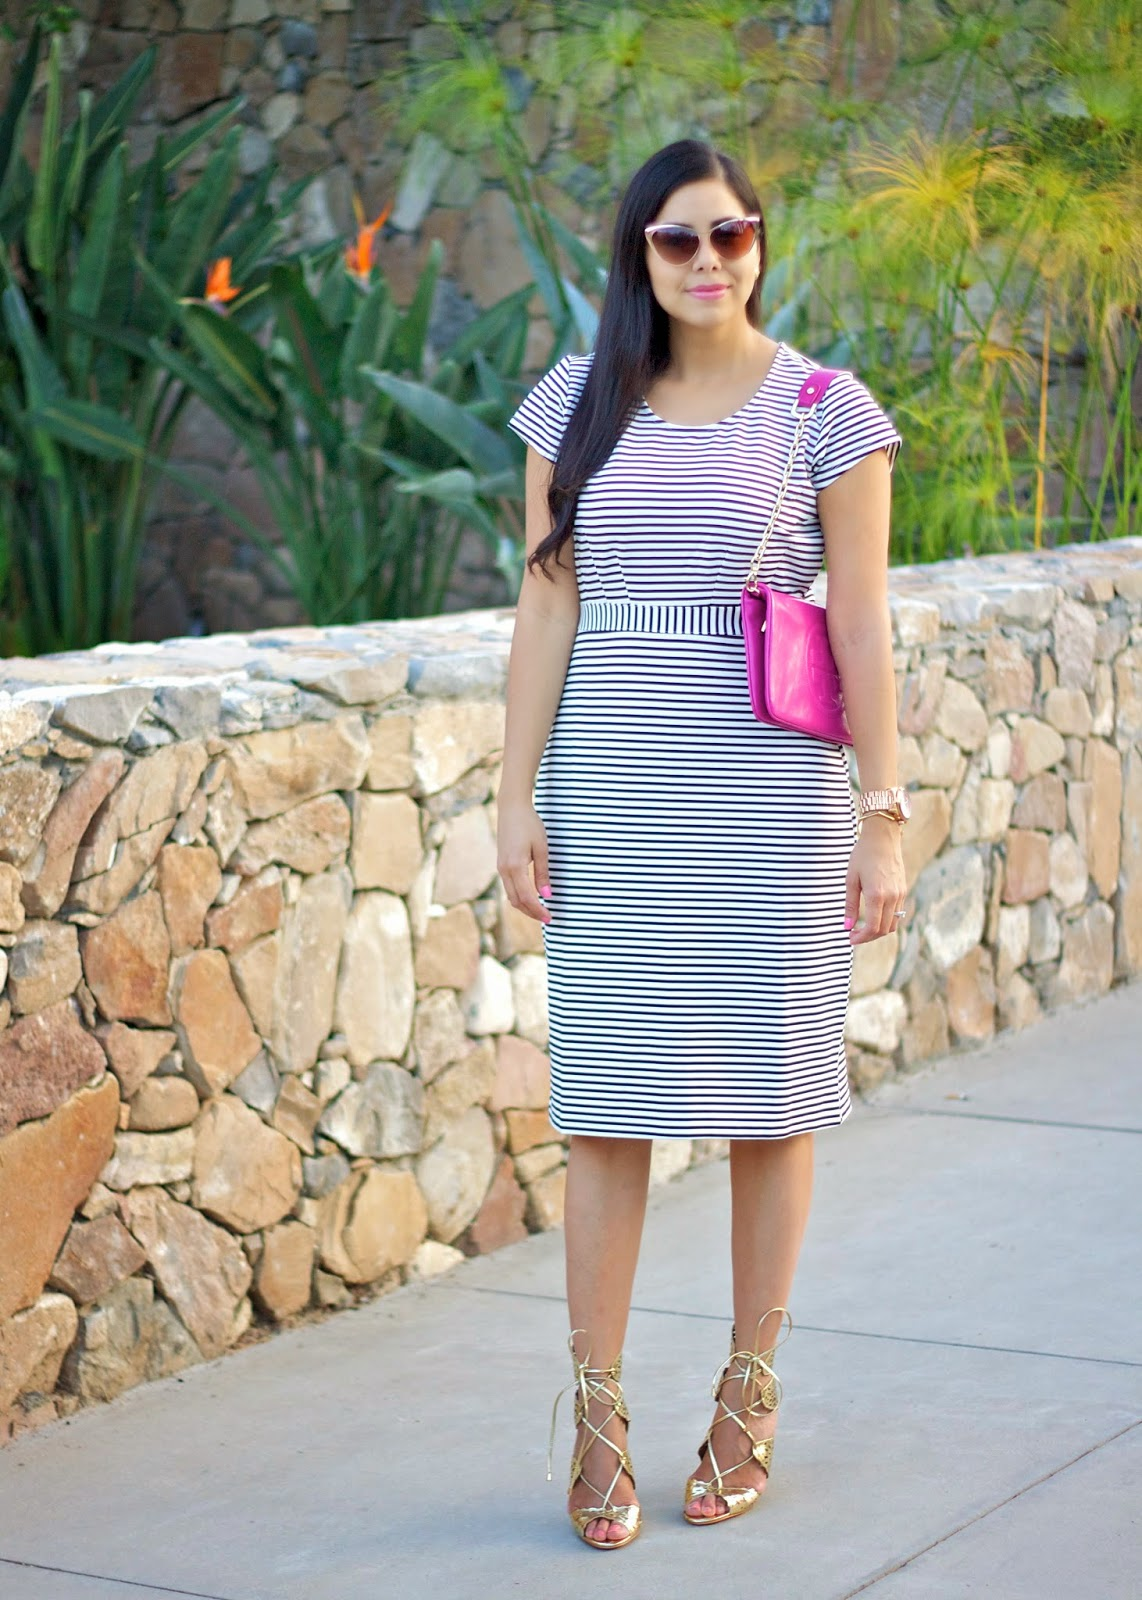 Striped midi dress with hot pink purse, san diego fashion blogger, san diego style, fashion week san diego, fwsd